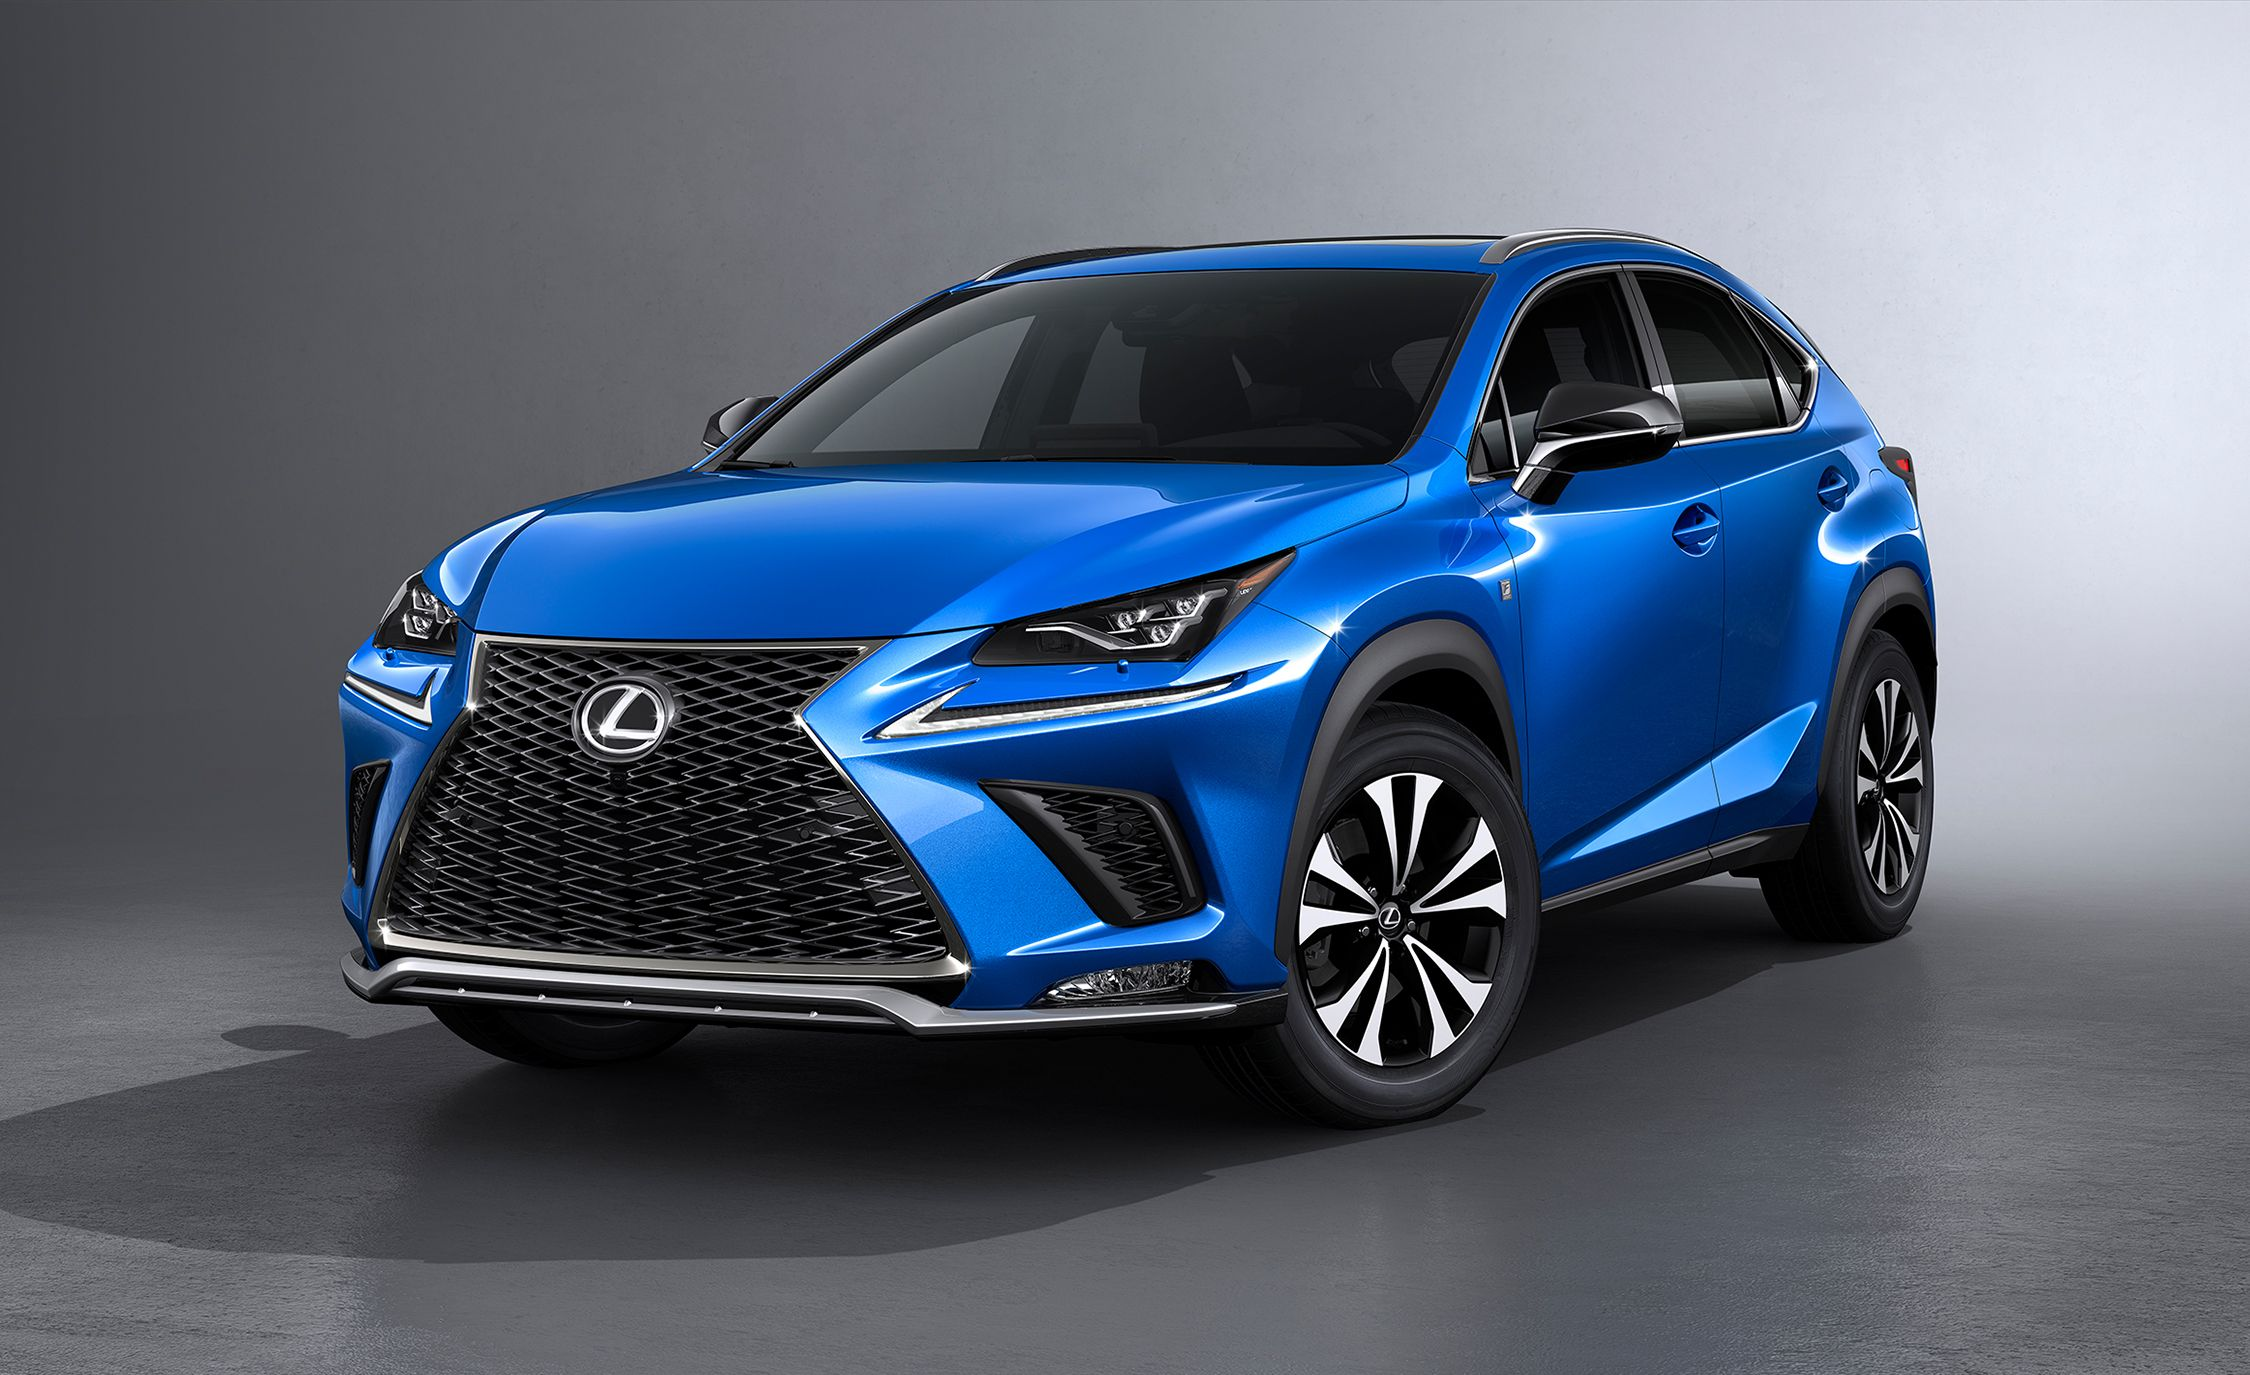 2019 lexus nx reviews | lexus nx price, photos, and specs | car and